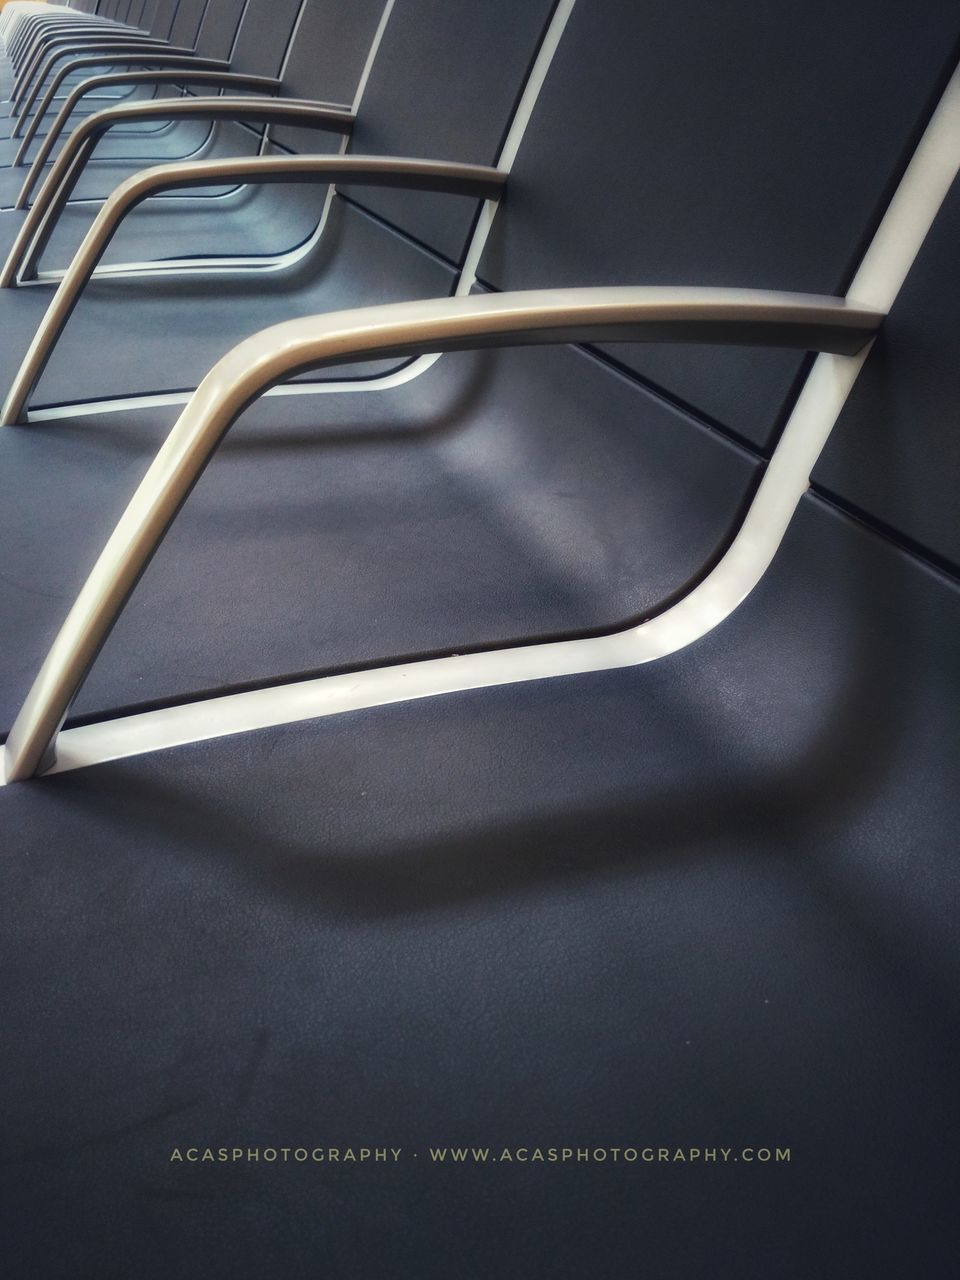 shadow, no people, indoors, empty, absence, seat, chair, high angle view, table, metal, close-up, still life, day, sunlight, communication, furniture, connection, nature